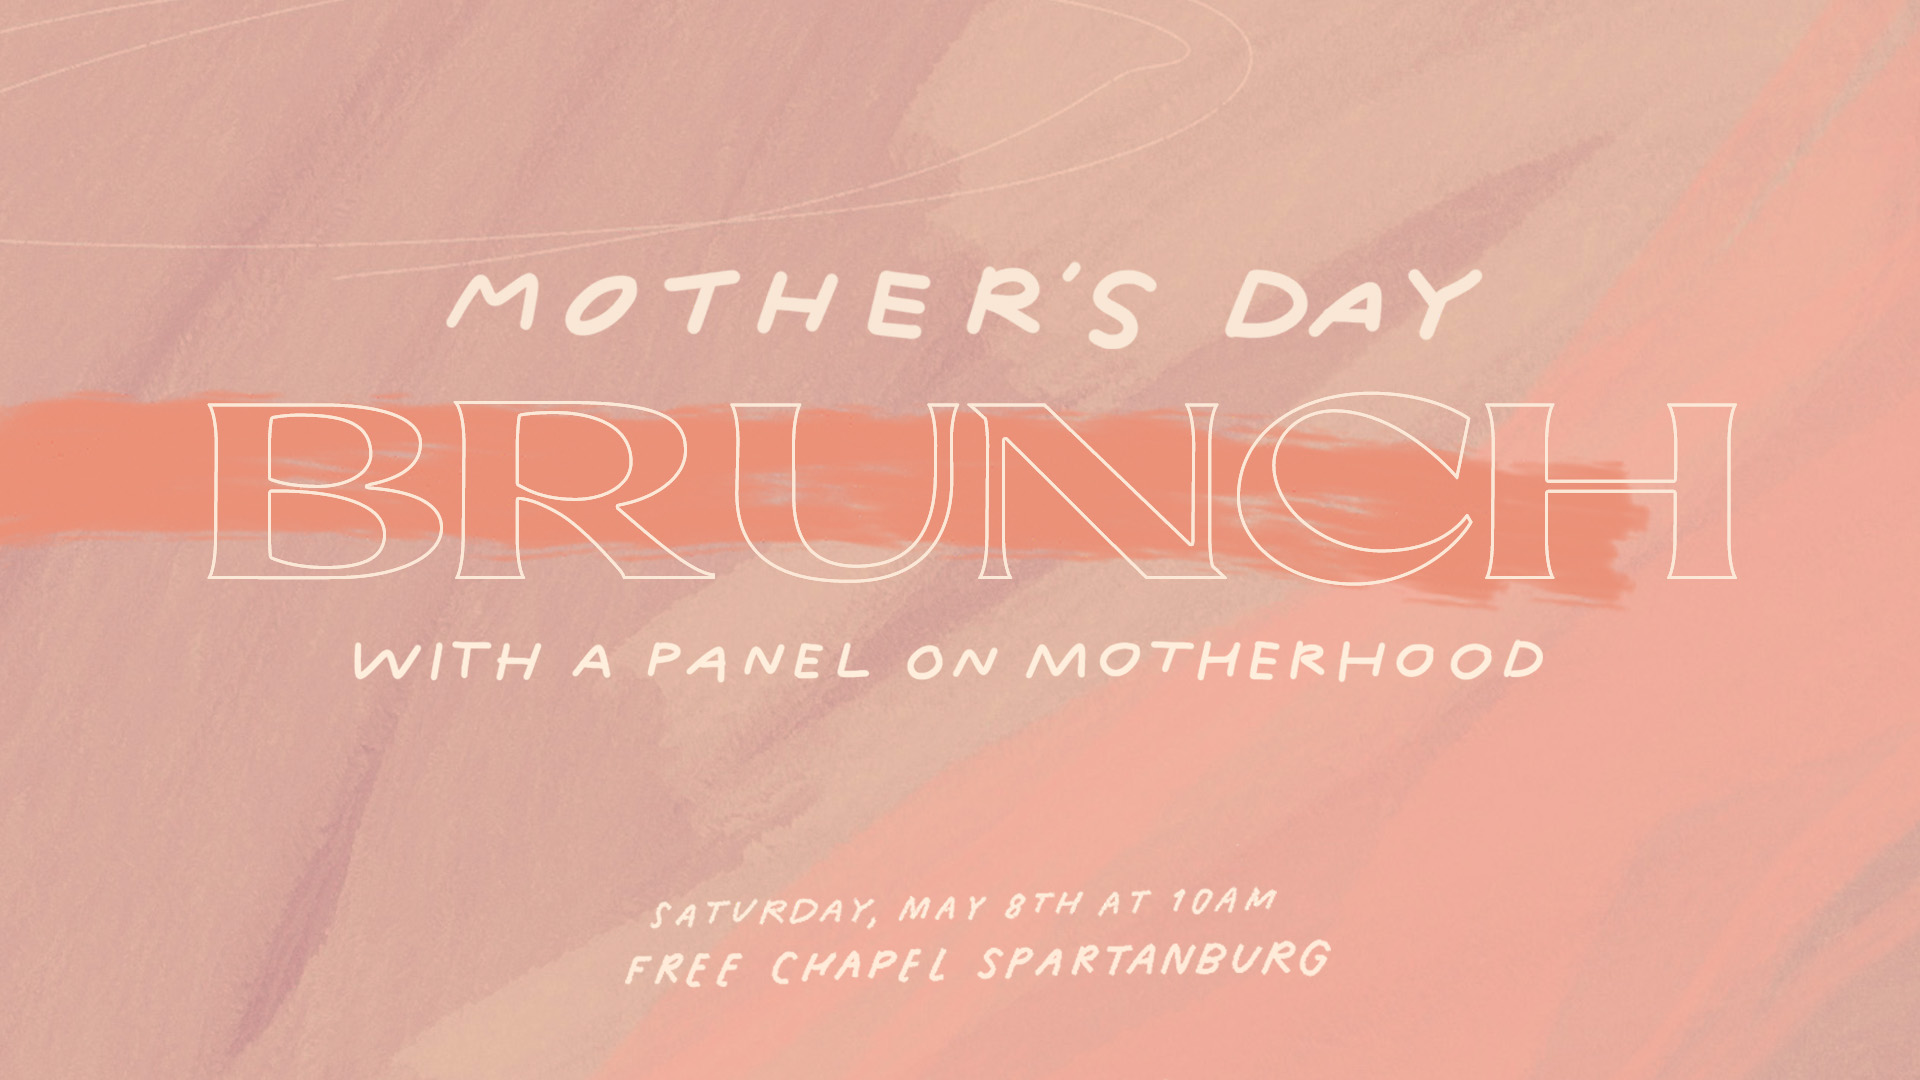 Mother's Day Brunch at the Spartanburg campus